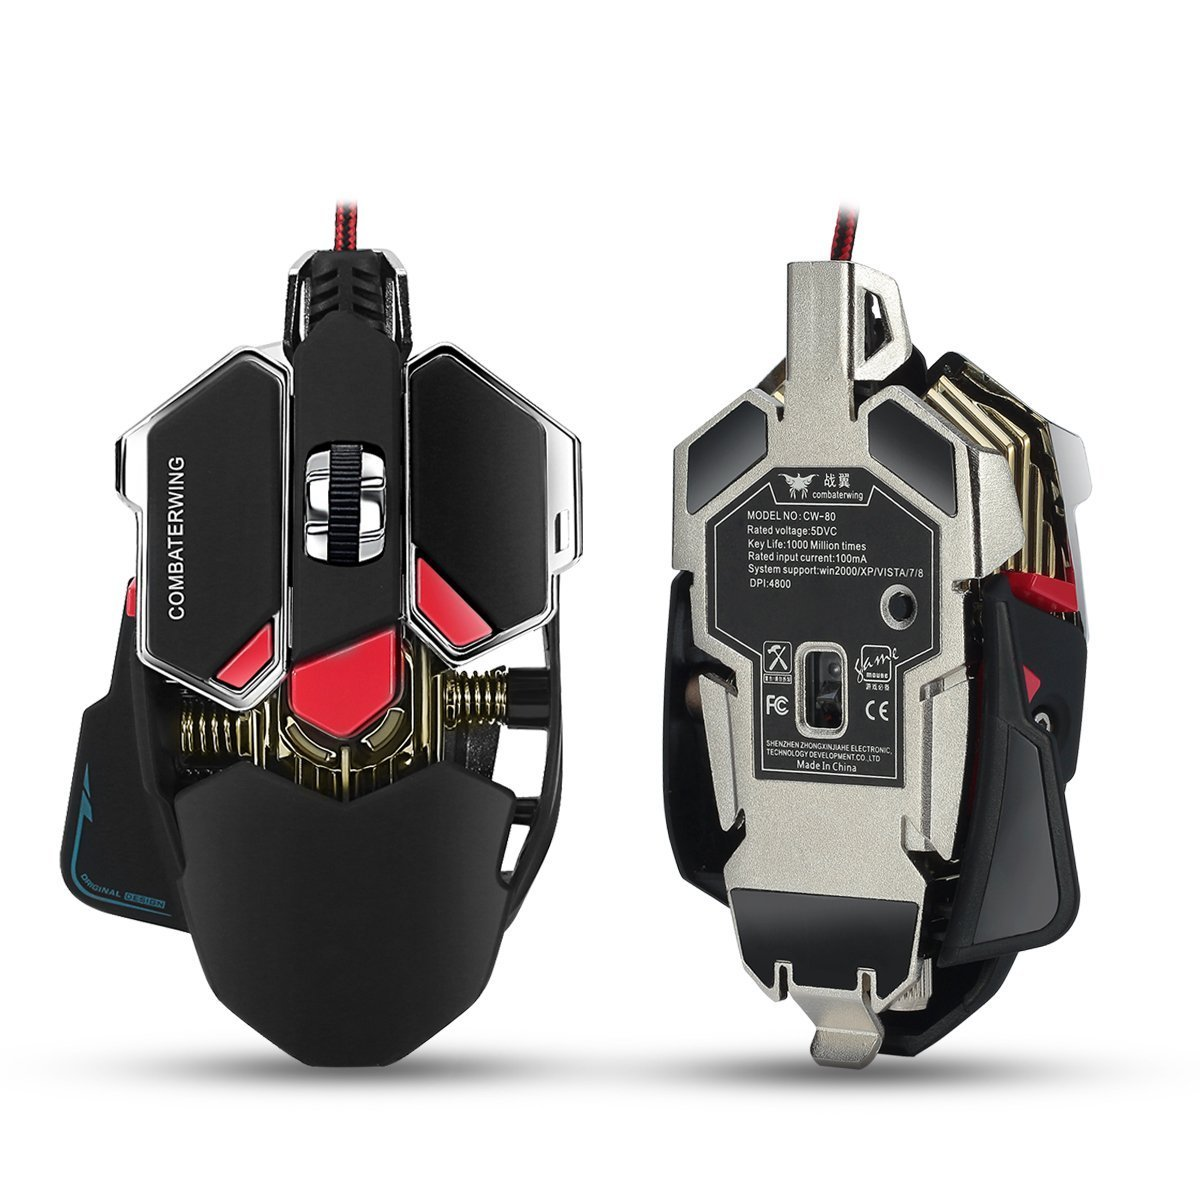 4800DPI Programmable CW80 Gaming Mouse, ZaKitane Wired Gaming Mice with LED RGB Light for PC Computer Laptop Notebook Gamer Mice